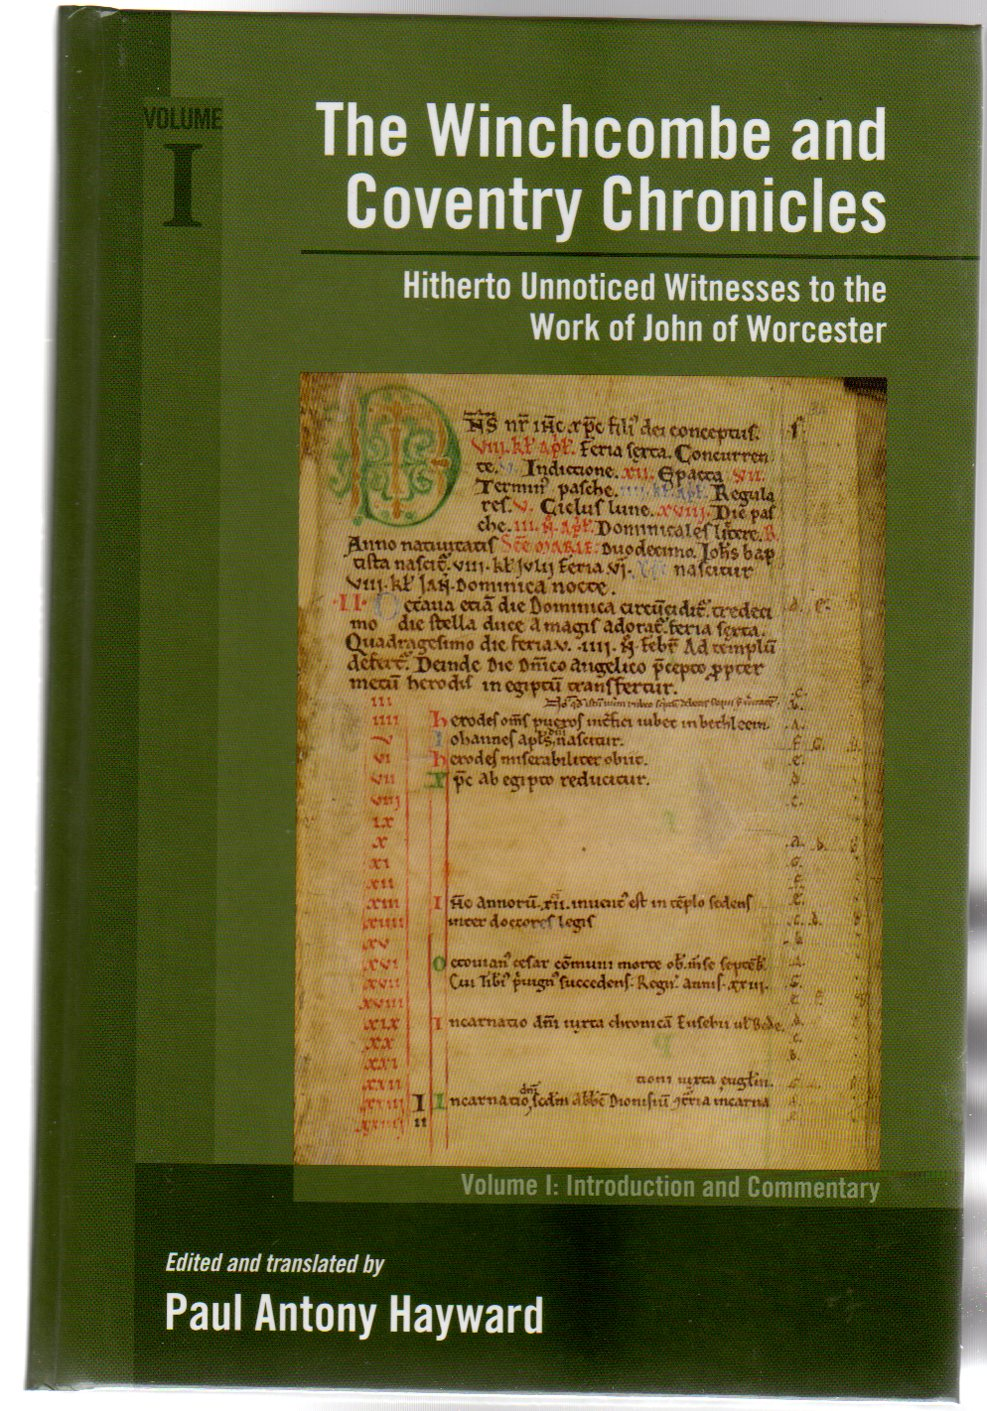 Image for The Winchcombe and Coventry Chronicles : Hitherto Unnoticed Witnesses to the Work of John of Worcester VOLUME I Introduction and Commentary